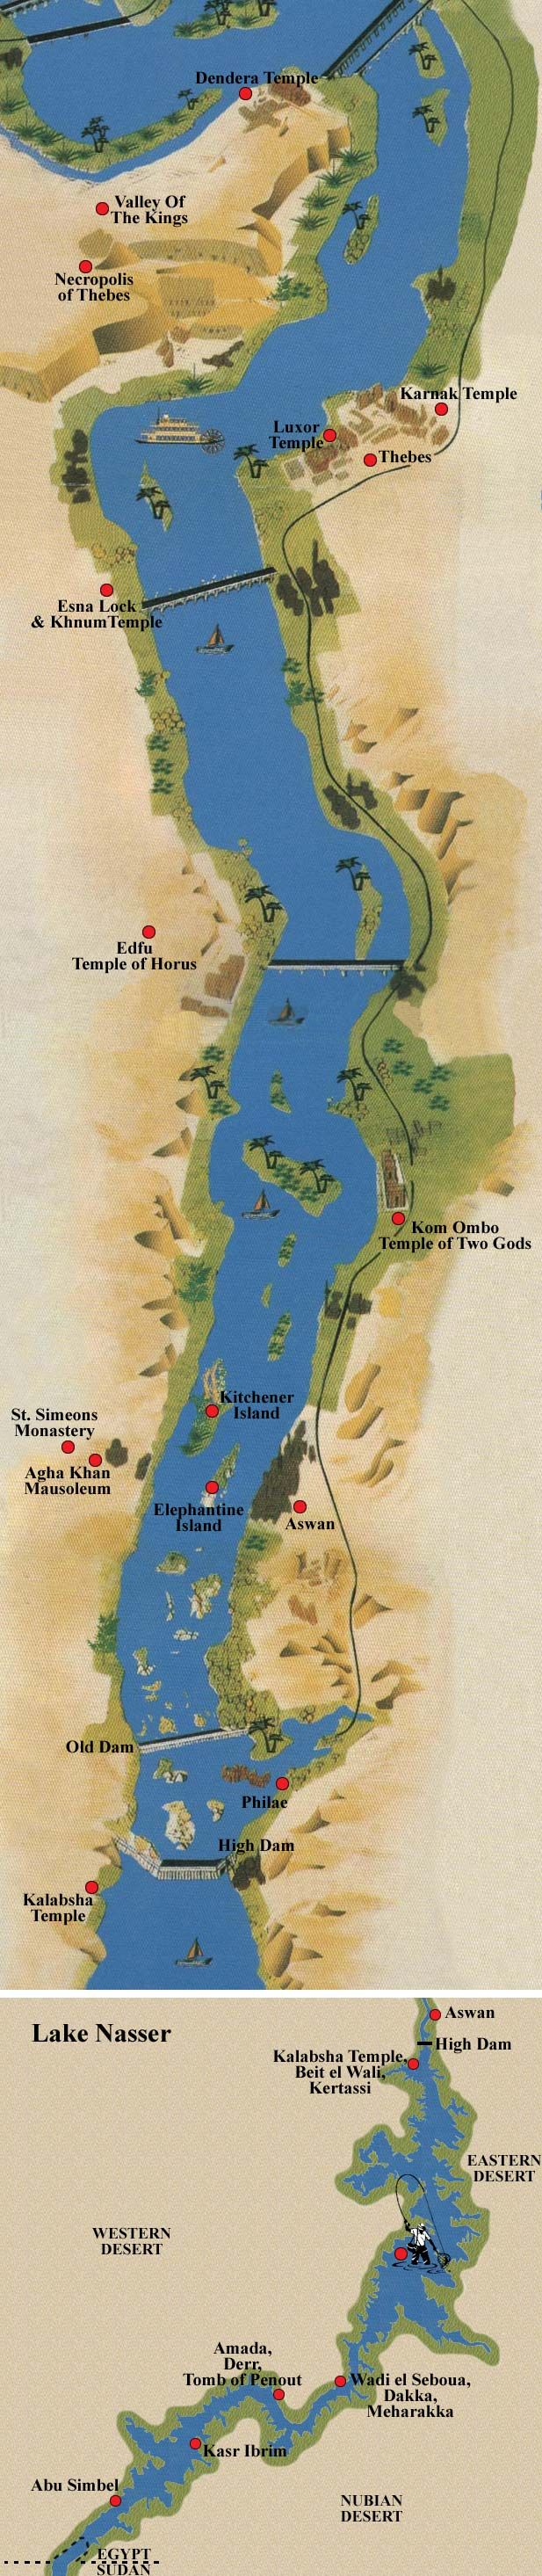 The Nile >>> Well, a large part of it anyway. The part I'd like to visit, via river cruise, one day.